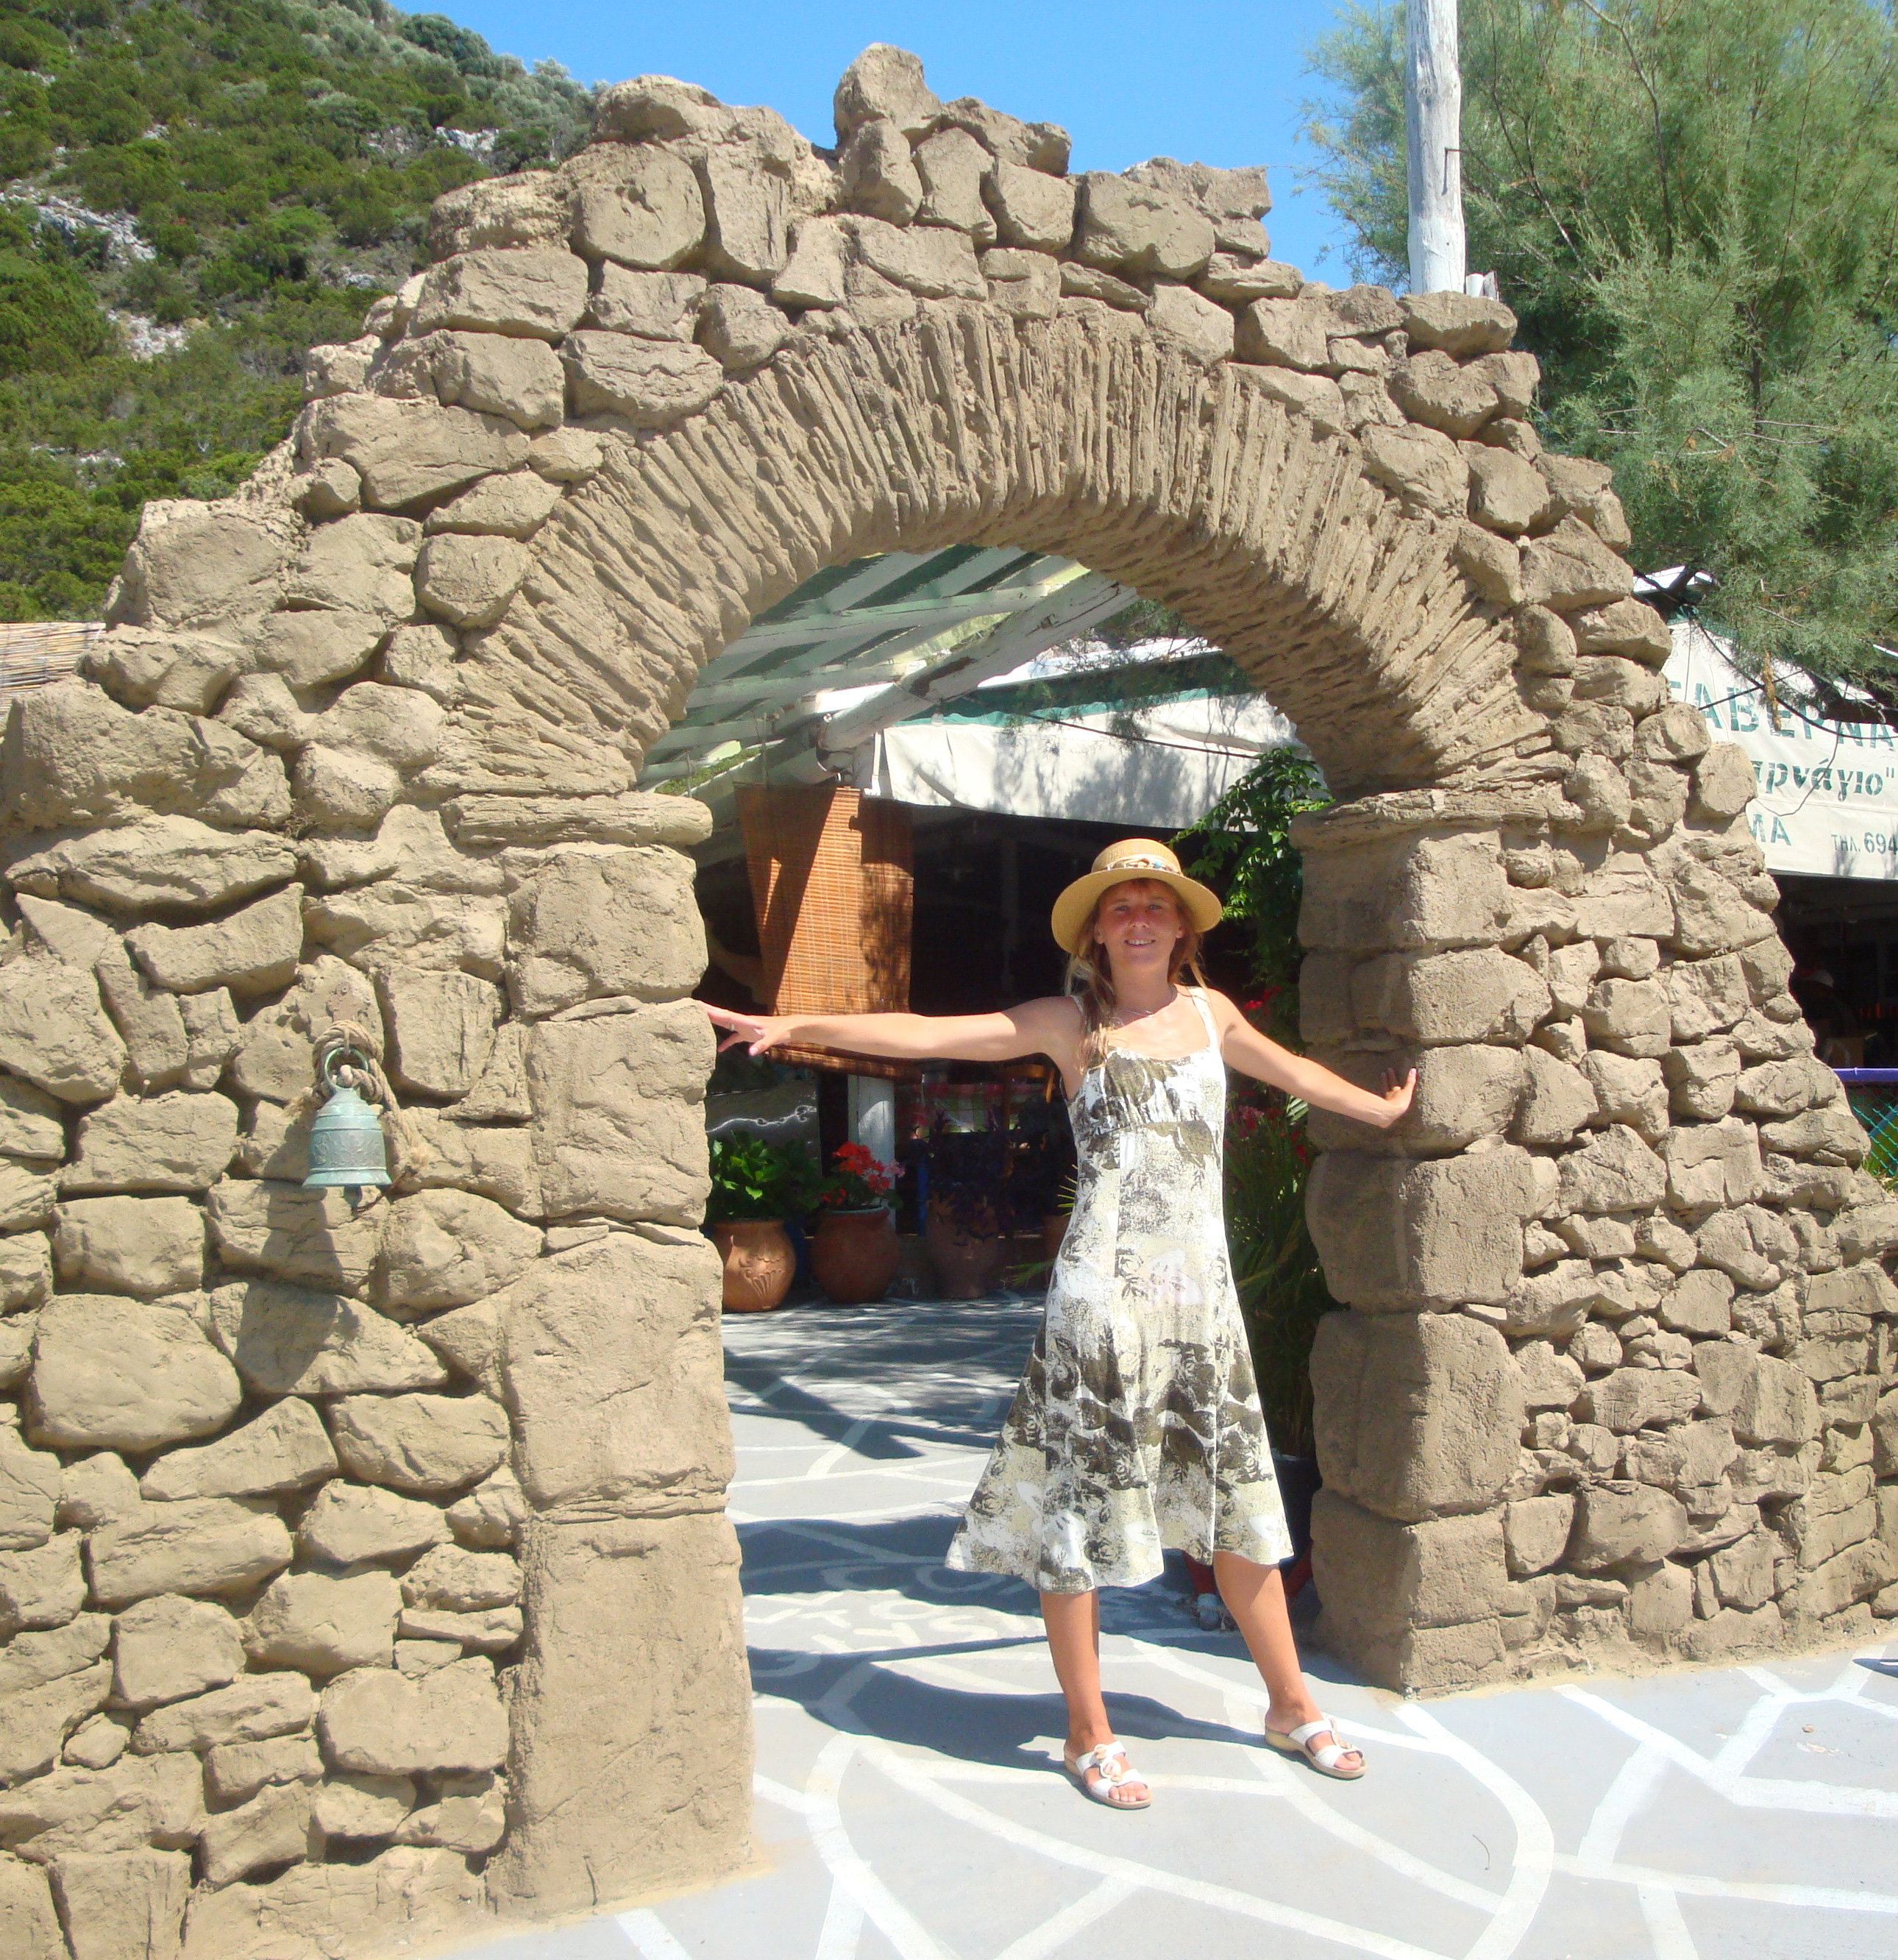 Arc of Villa Donna - This arc was moved from the Villa Donna to Glysteri beach (Γλυστέρι)